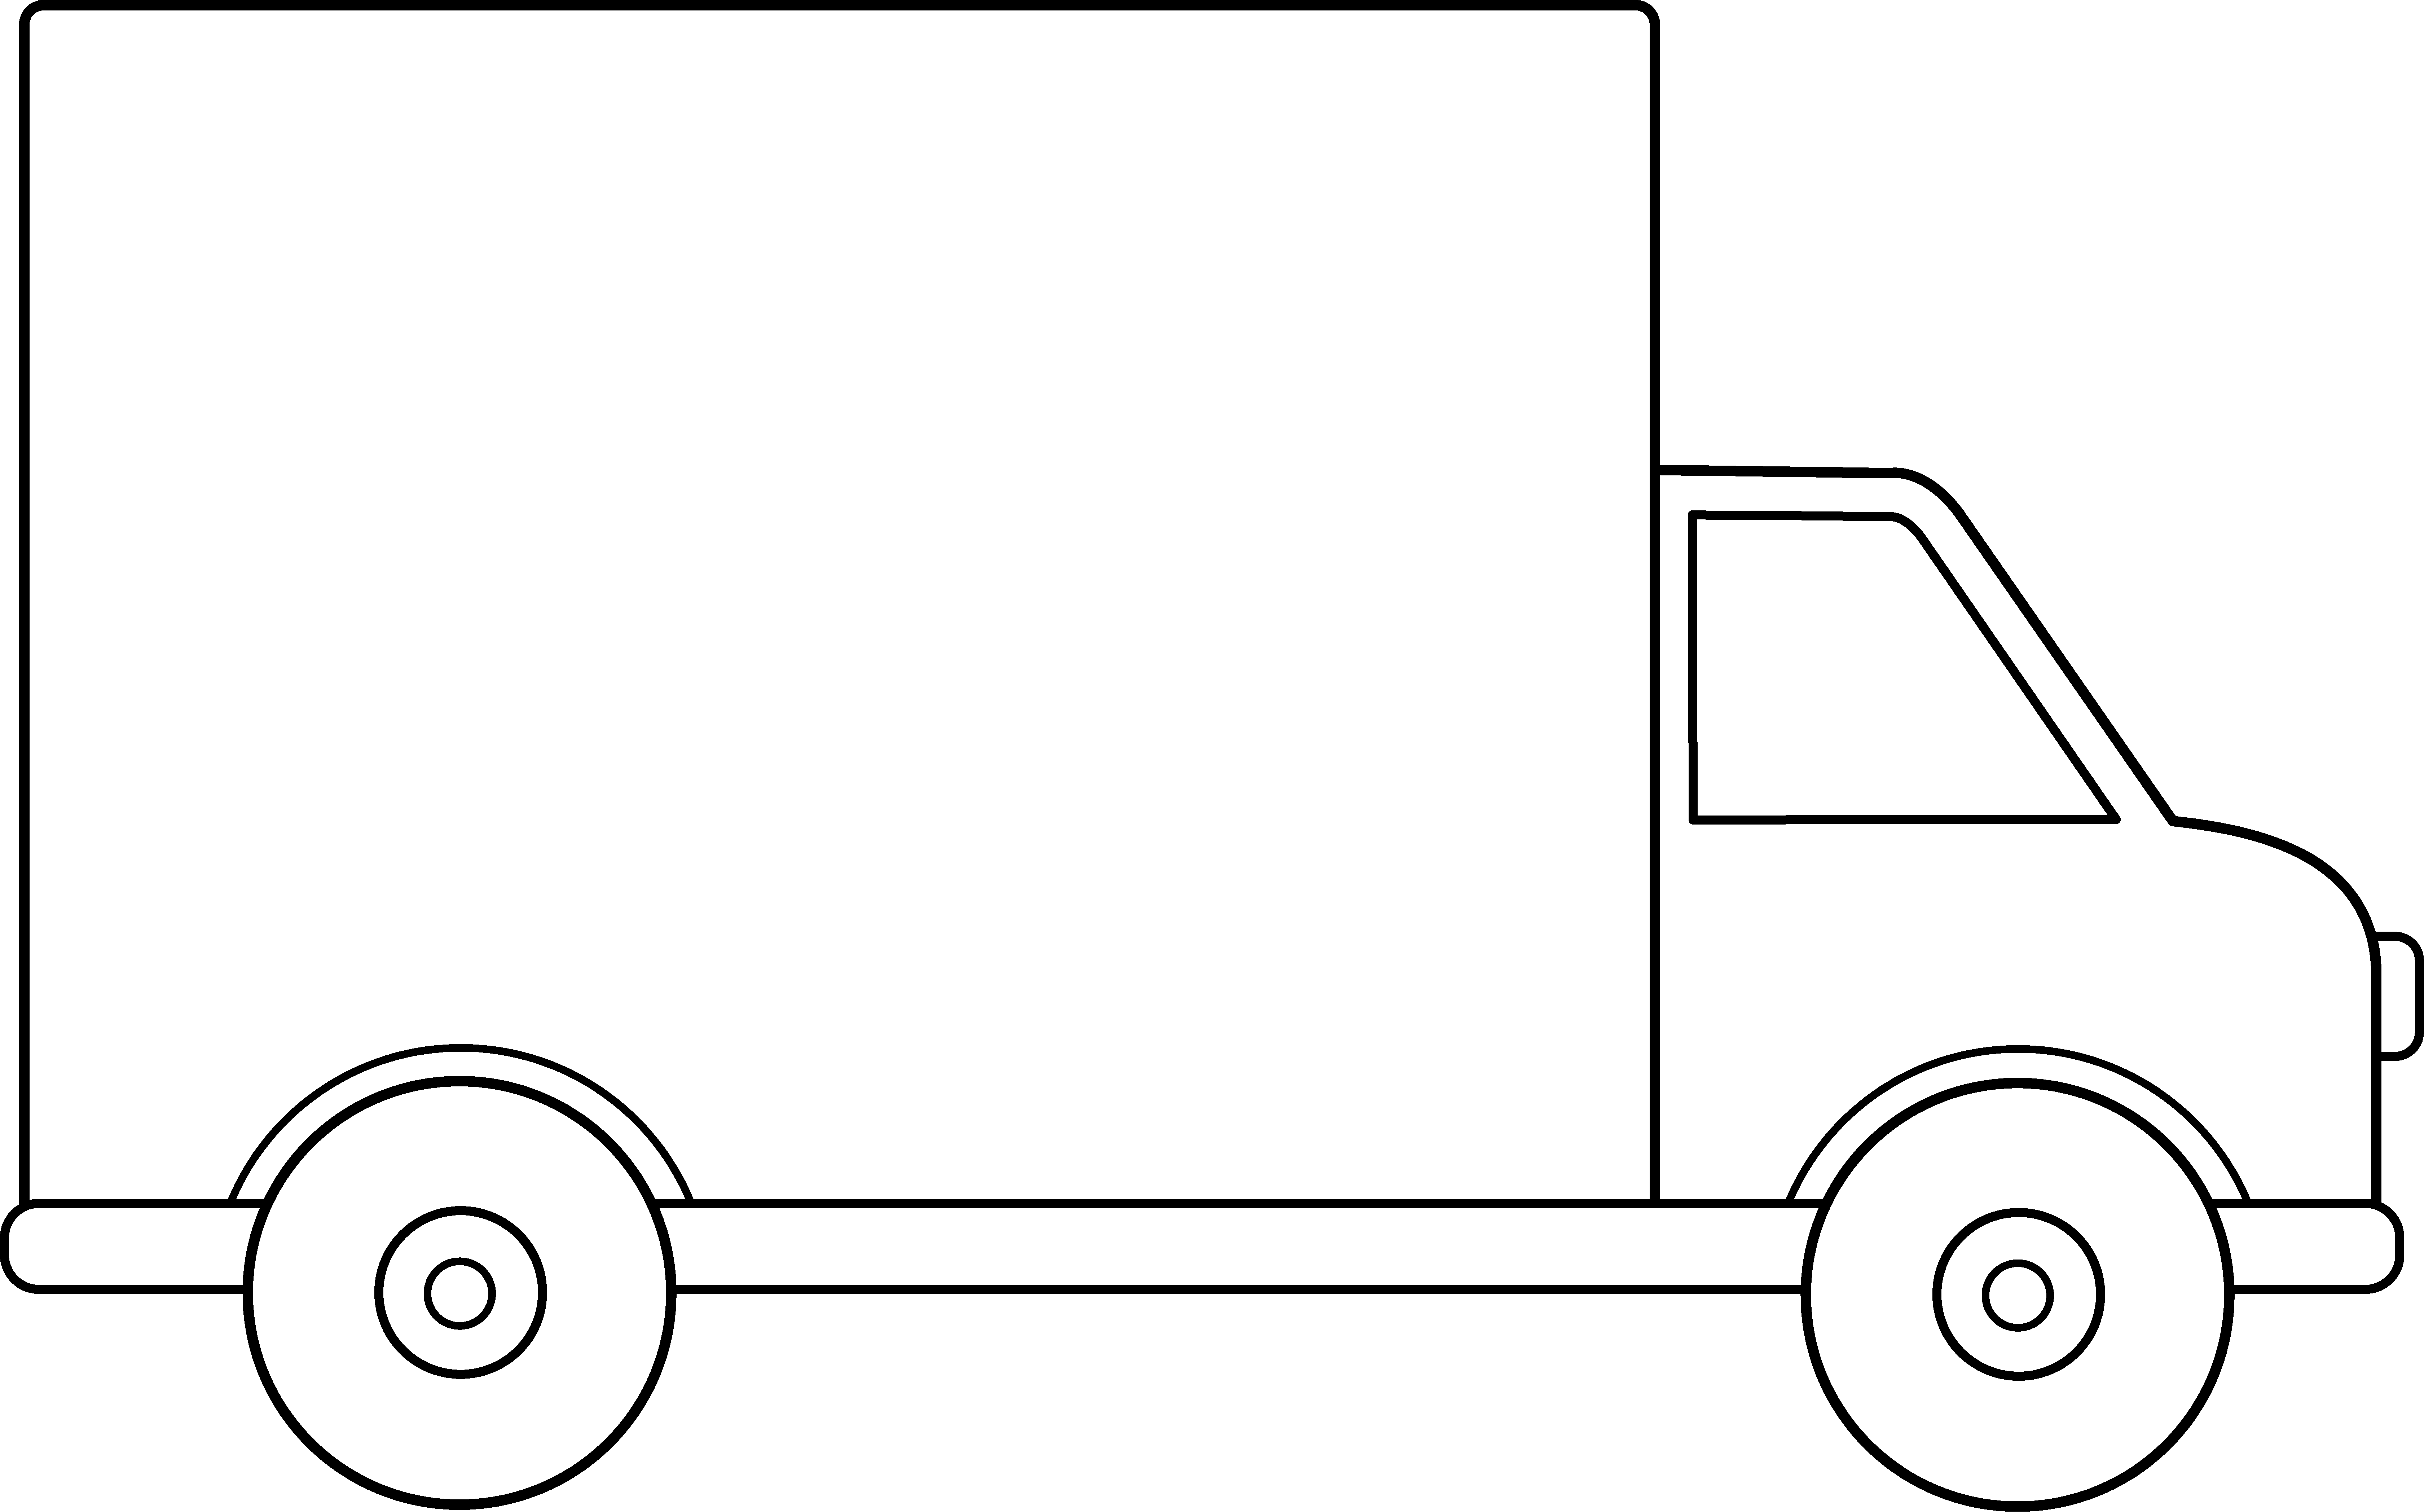 Delivery Truck Line Art - Free Clip Art-Delivery Truck Line Art - Free Clip Art-18